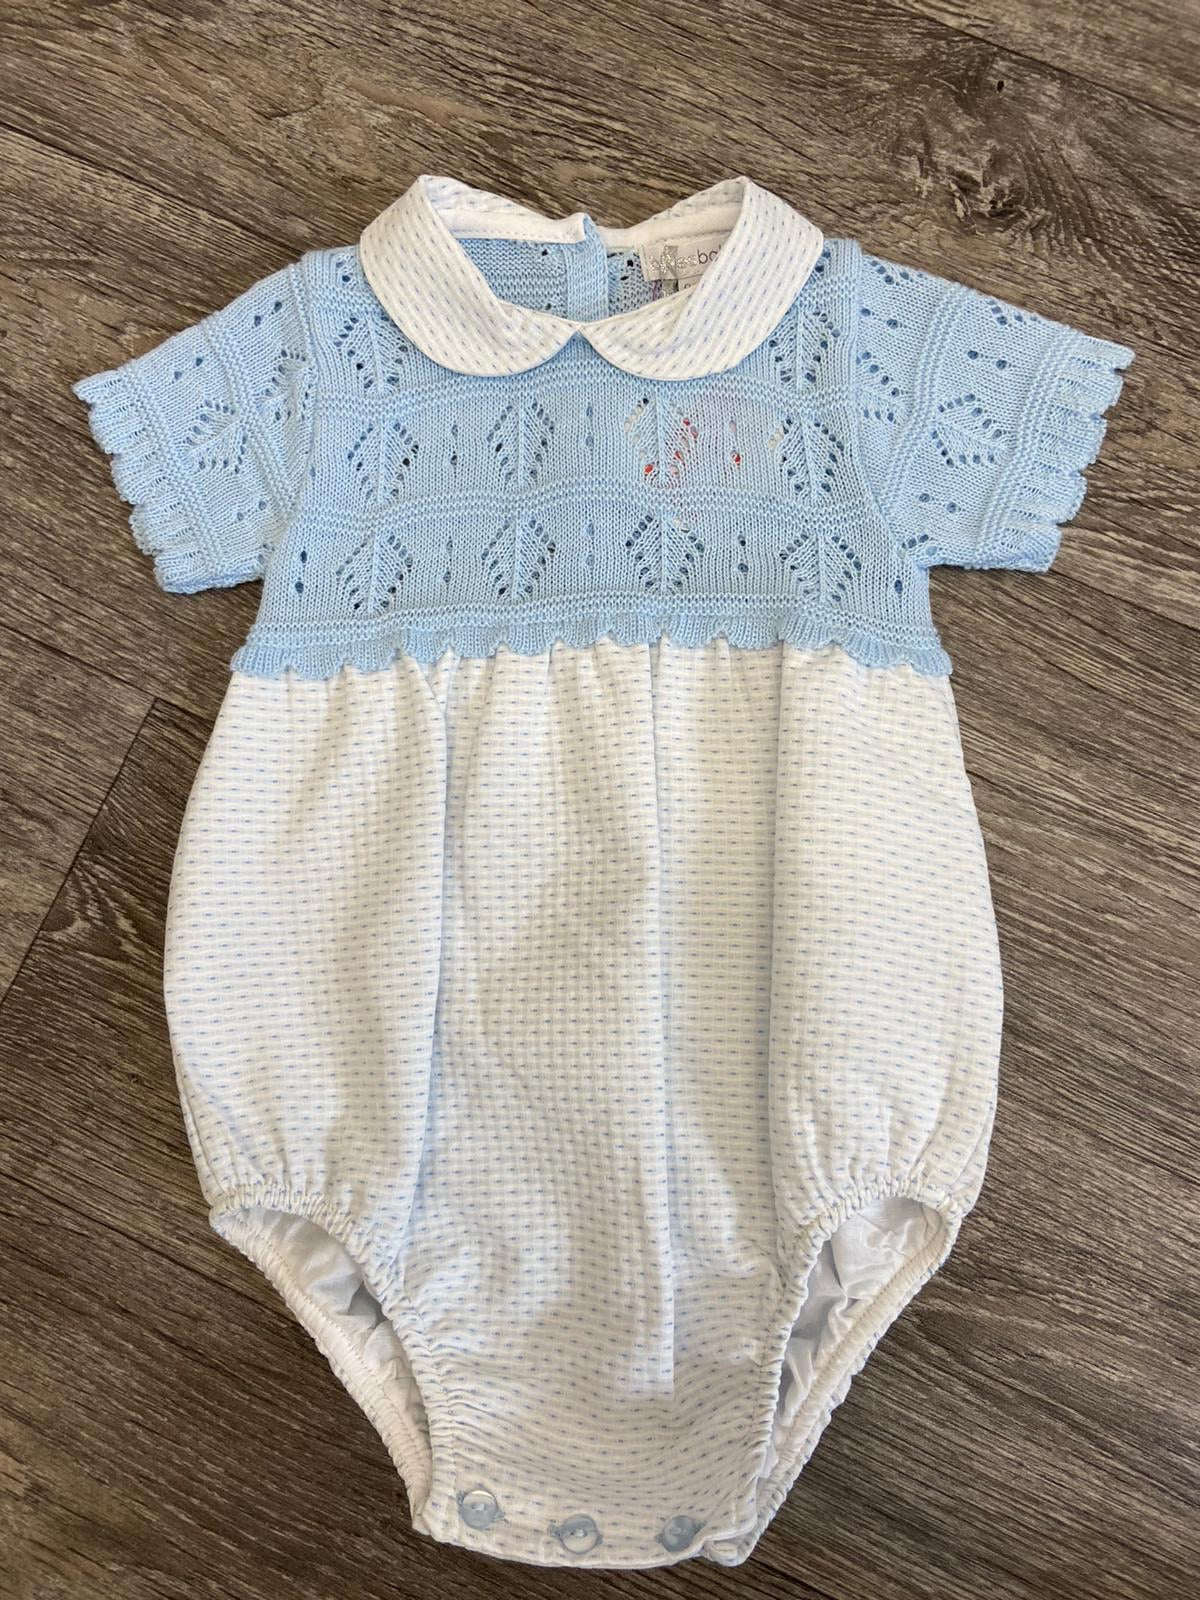 Blues Baby Peter Pan Knitted Romper